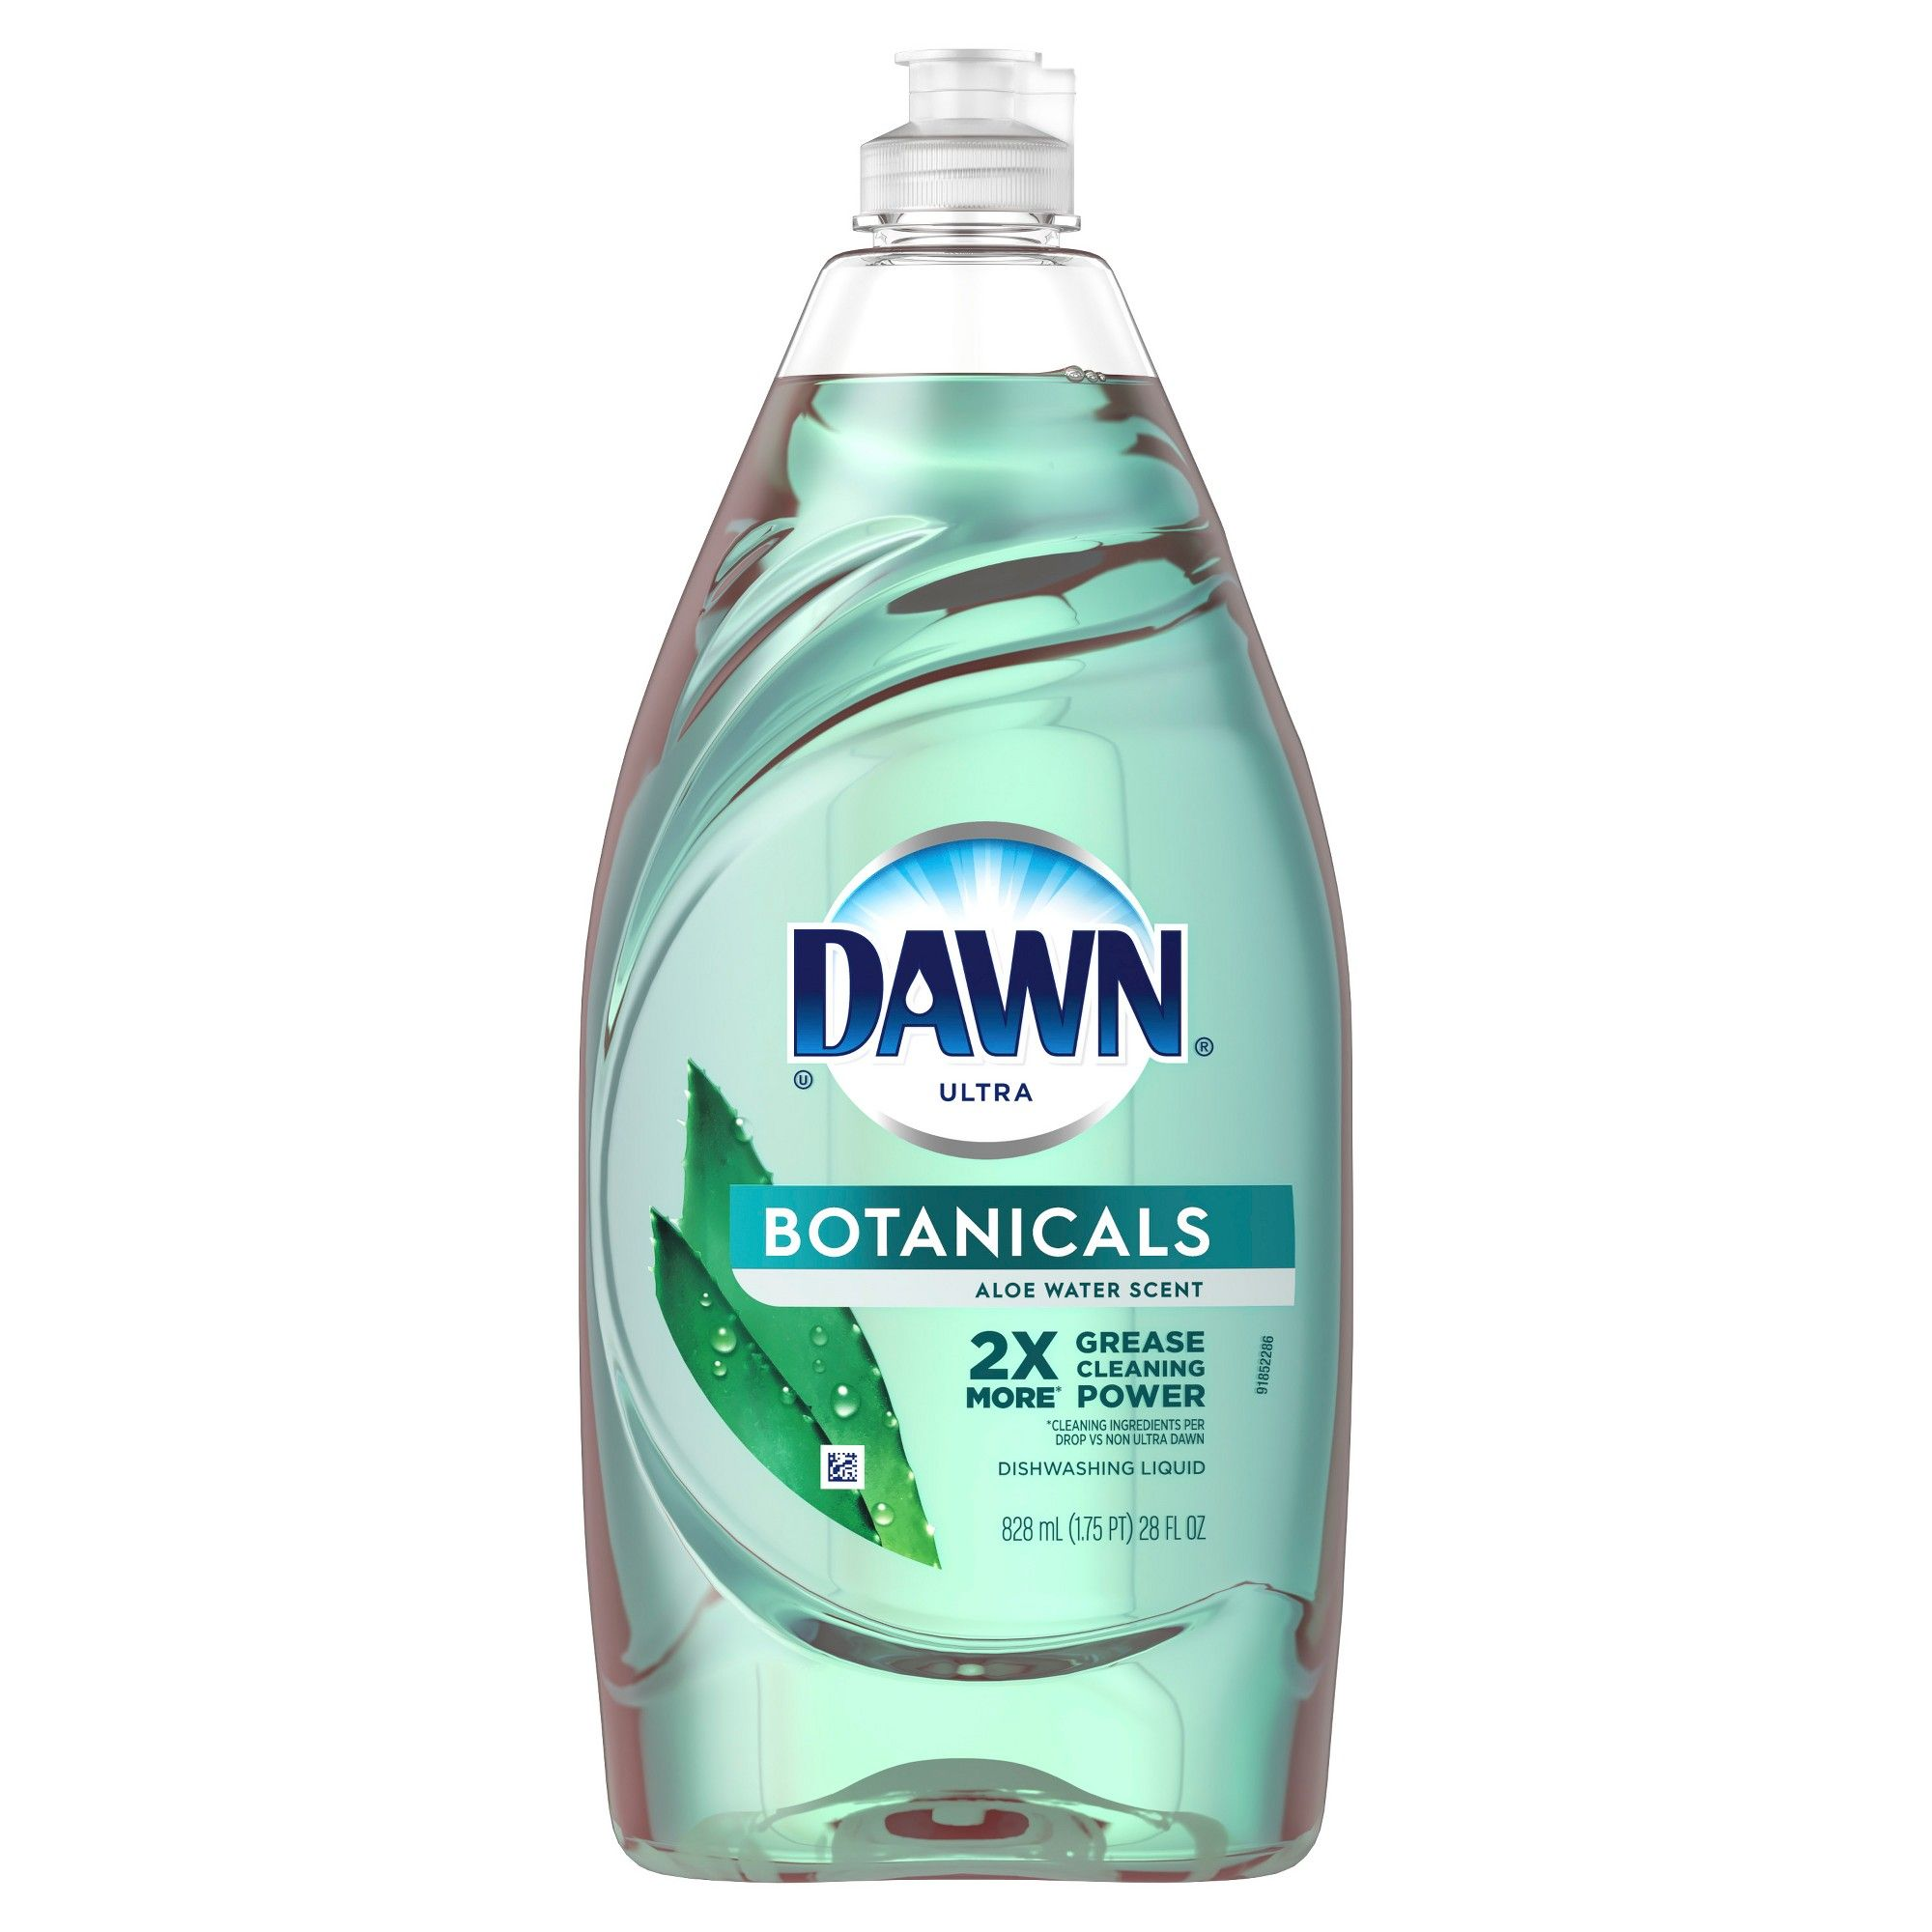 Dawn Ultra Botanicals Dishwashing Liquid Dish Soap Aloe Water